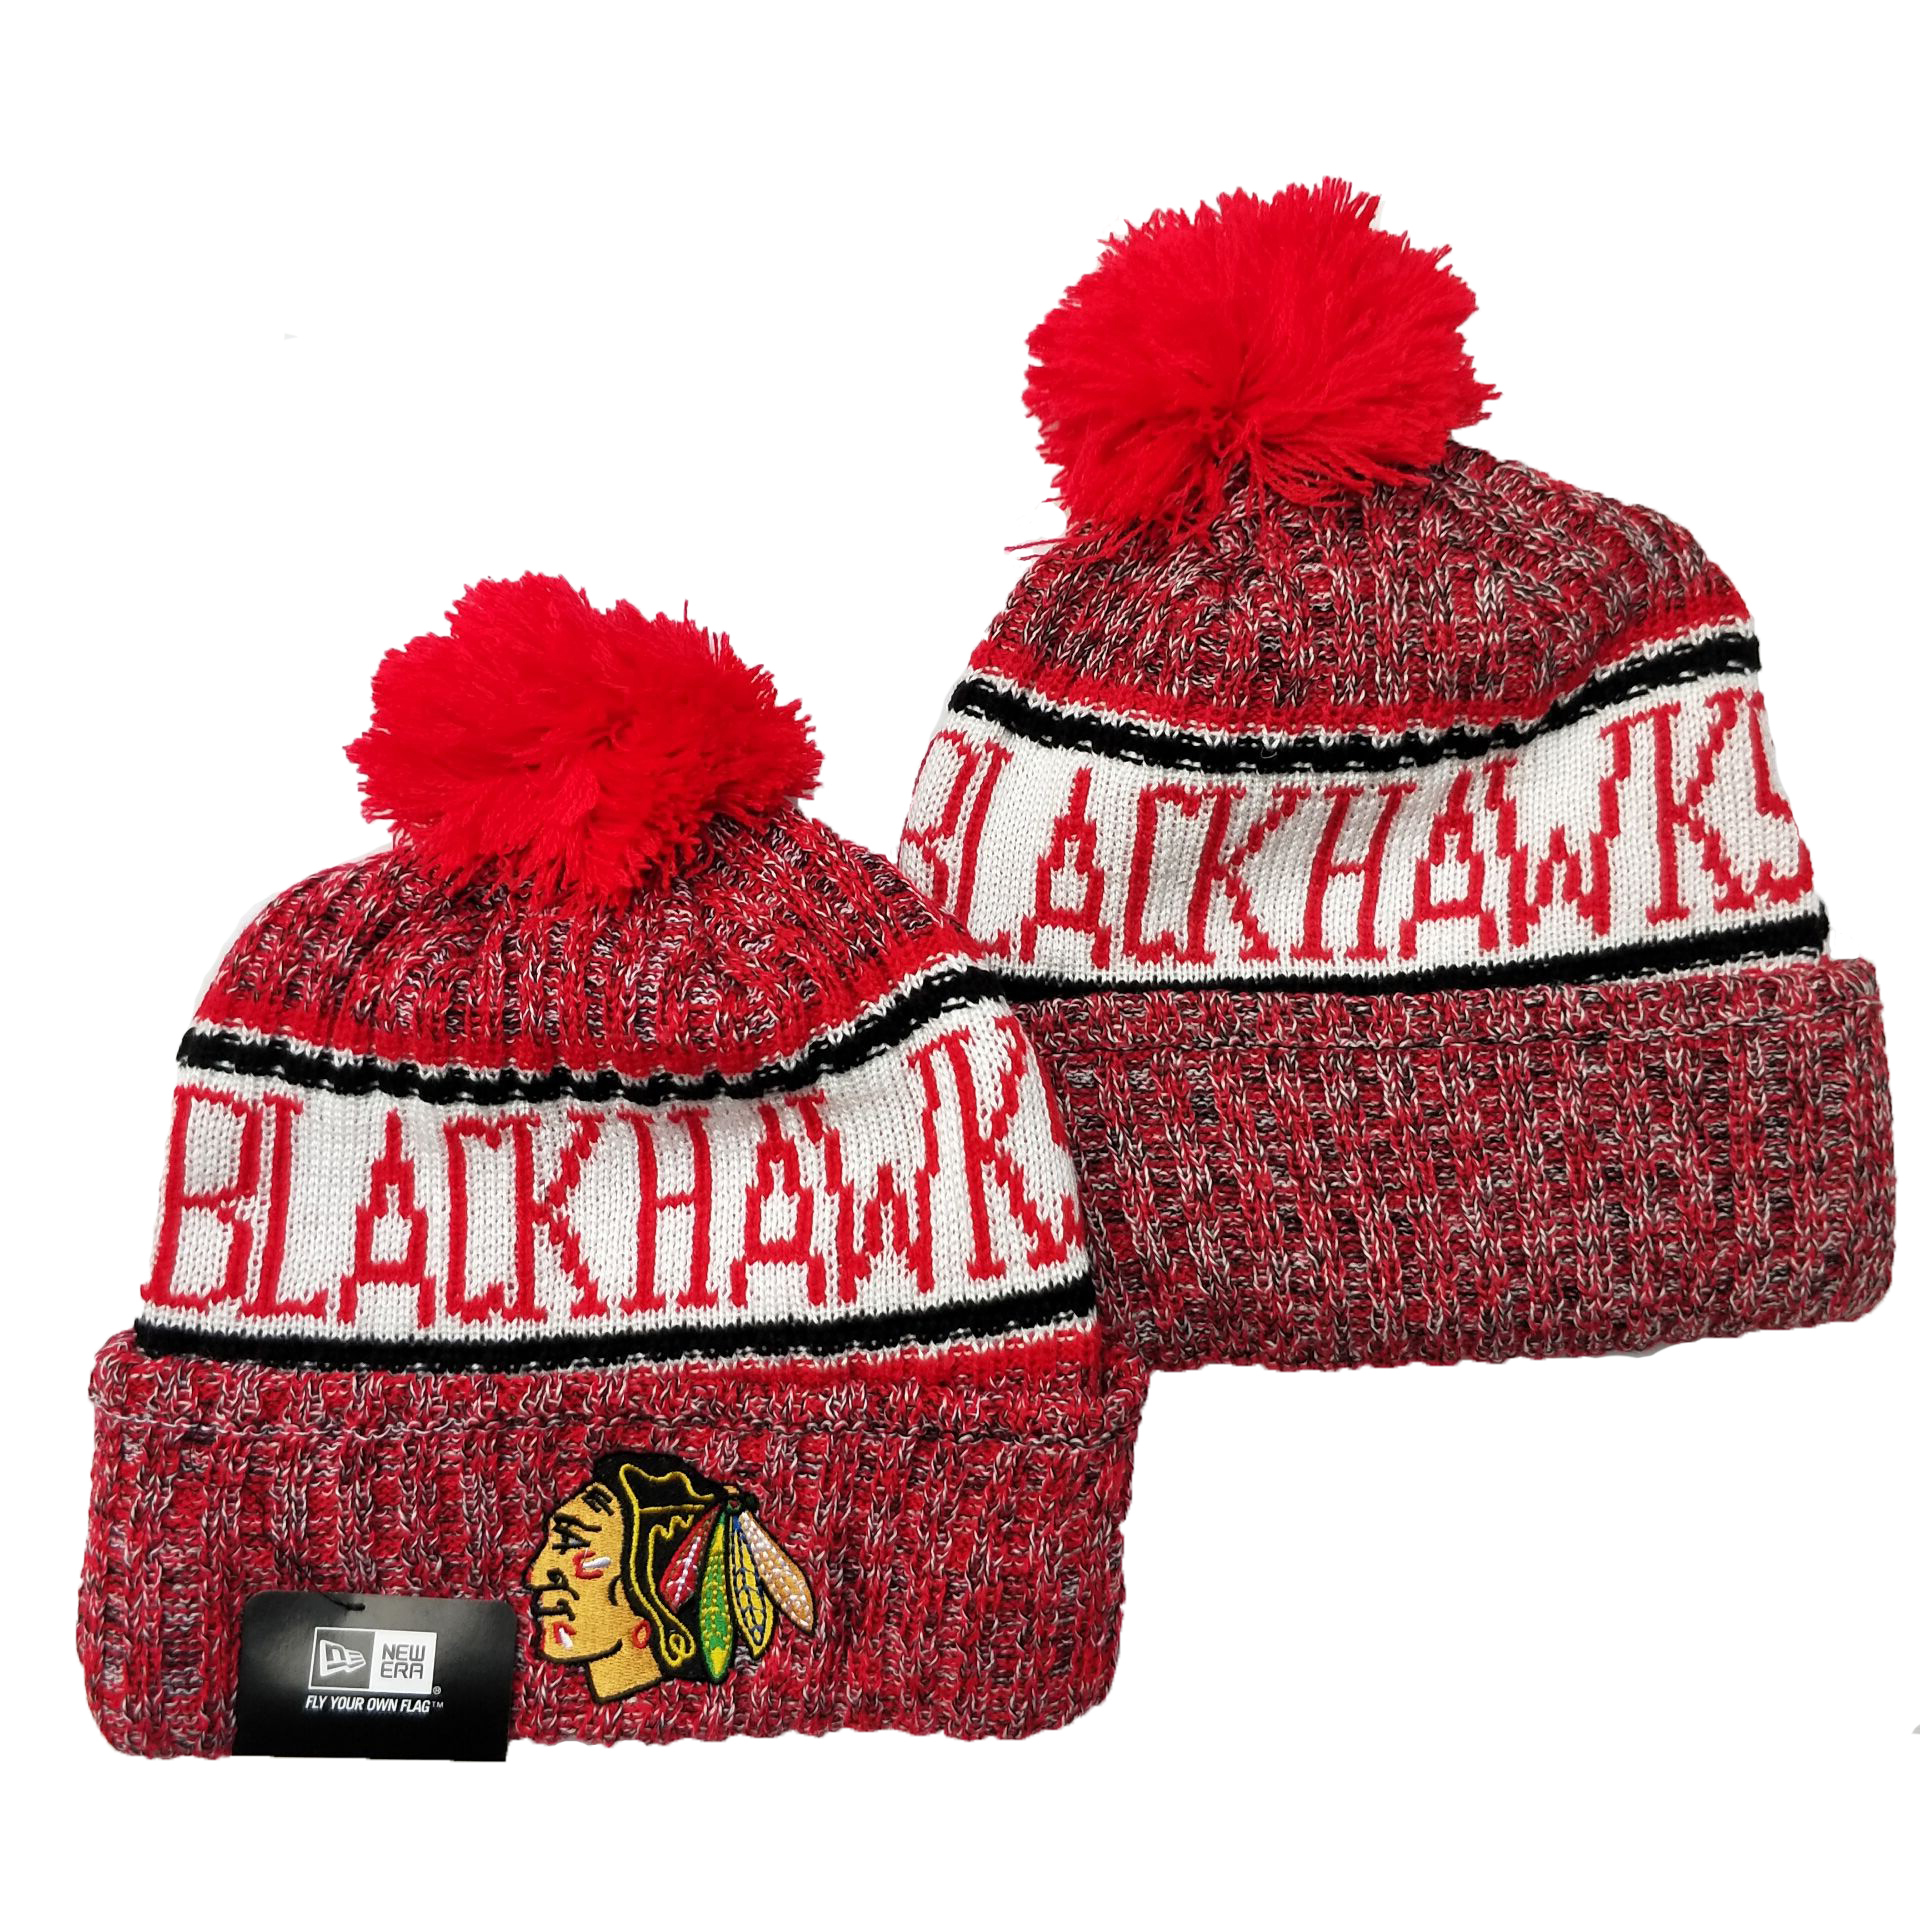 Blackhawks Team Logo Red Pom Cuffed Knit Hat YD